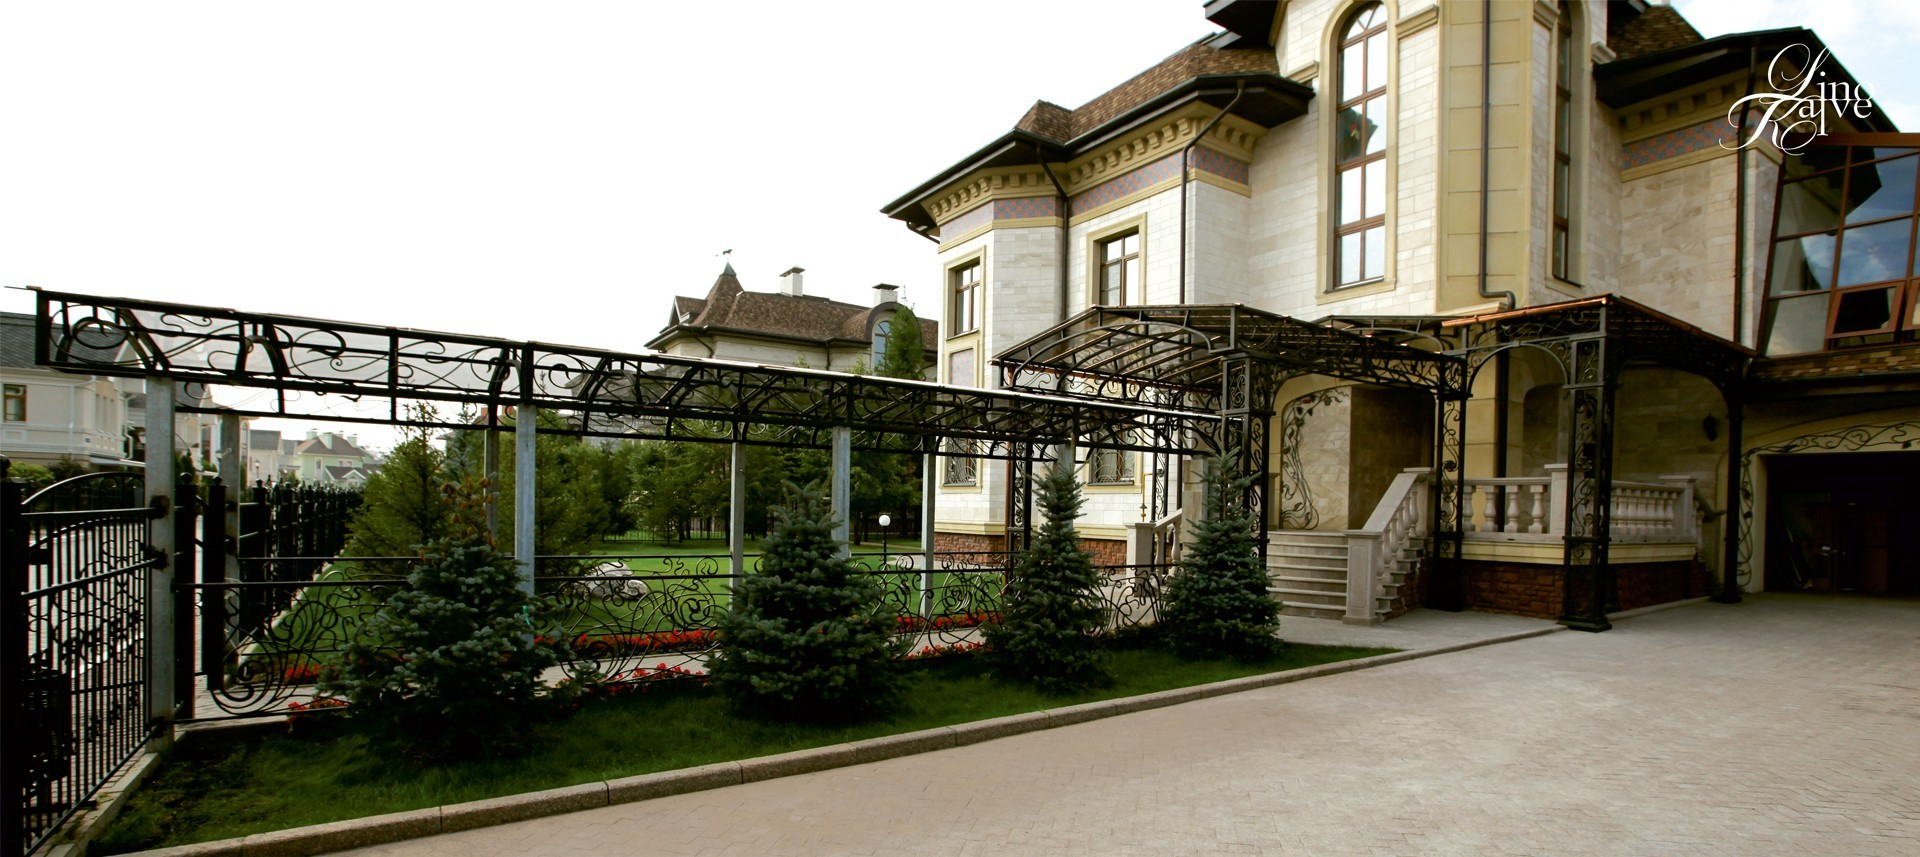 PRIVATE RESIDENCE. GALLERY